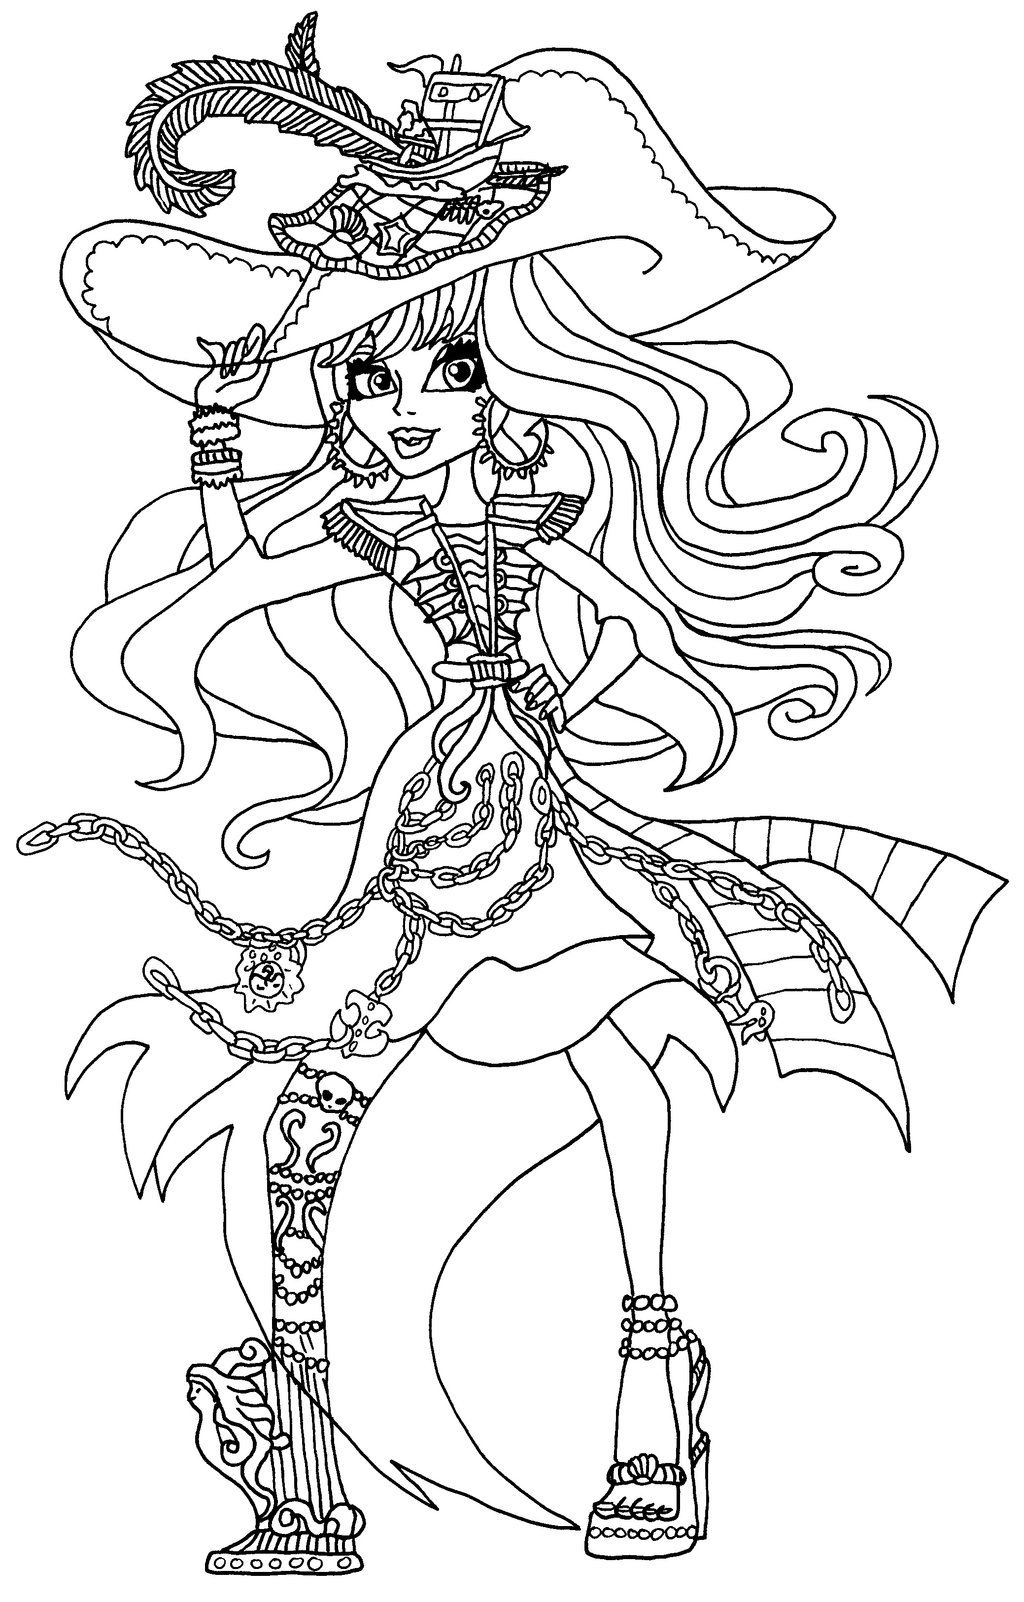 seven little monsters coloring pages - photo#32